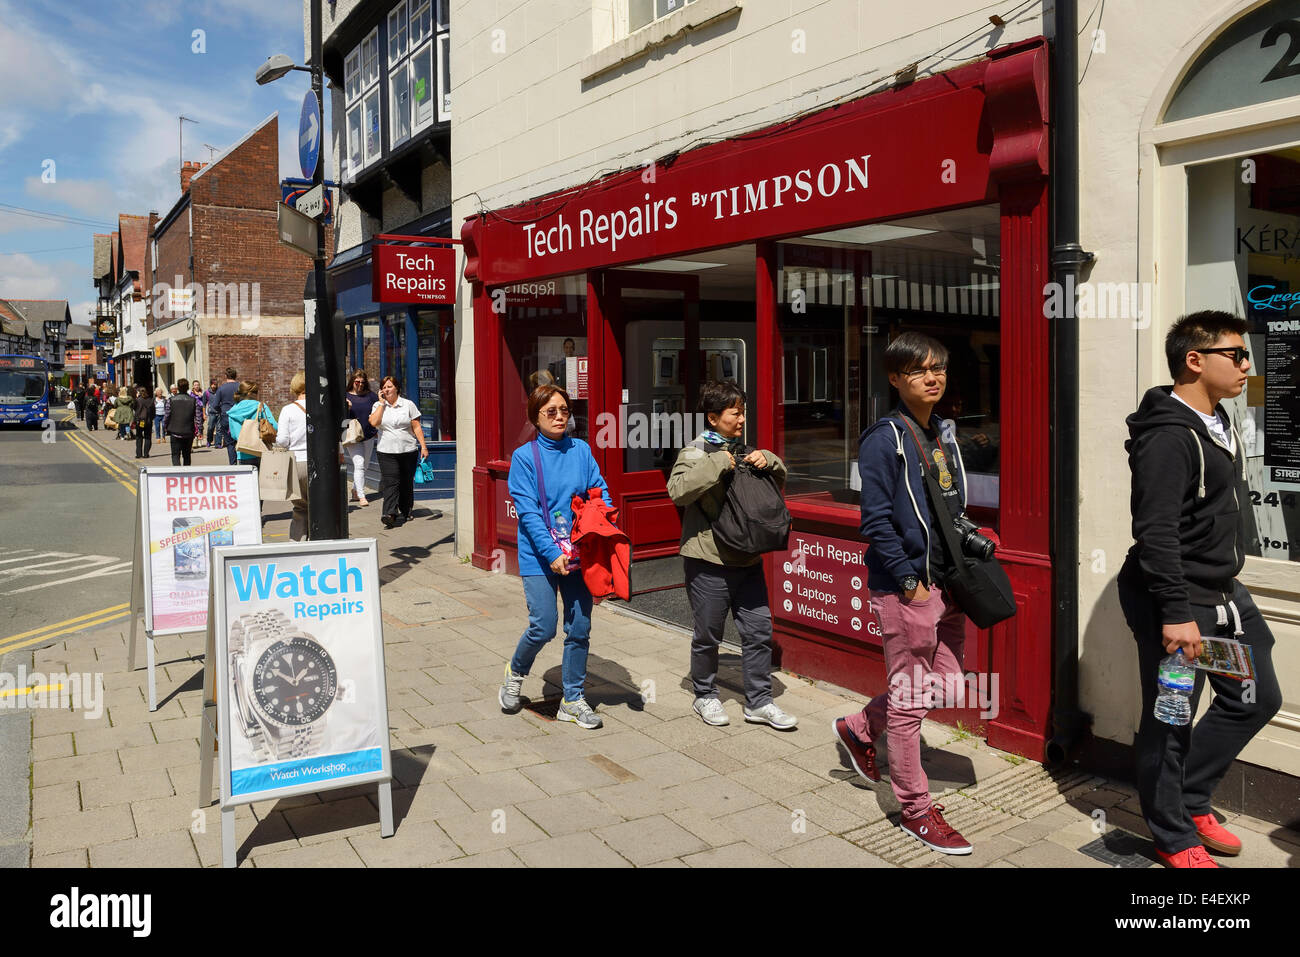 People in front of a Timpson Tech Repairs store - Stock Image